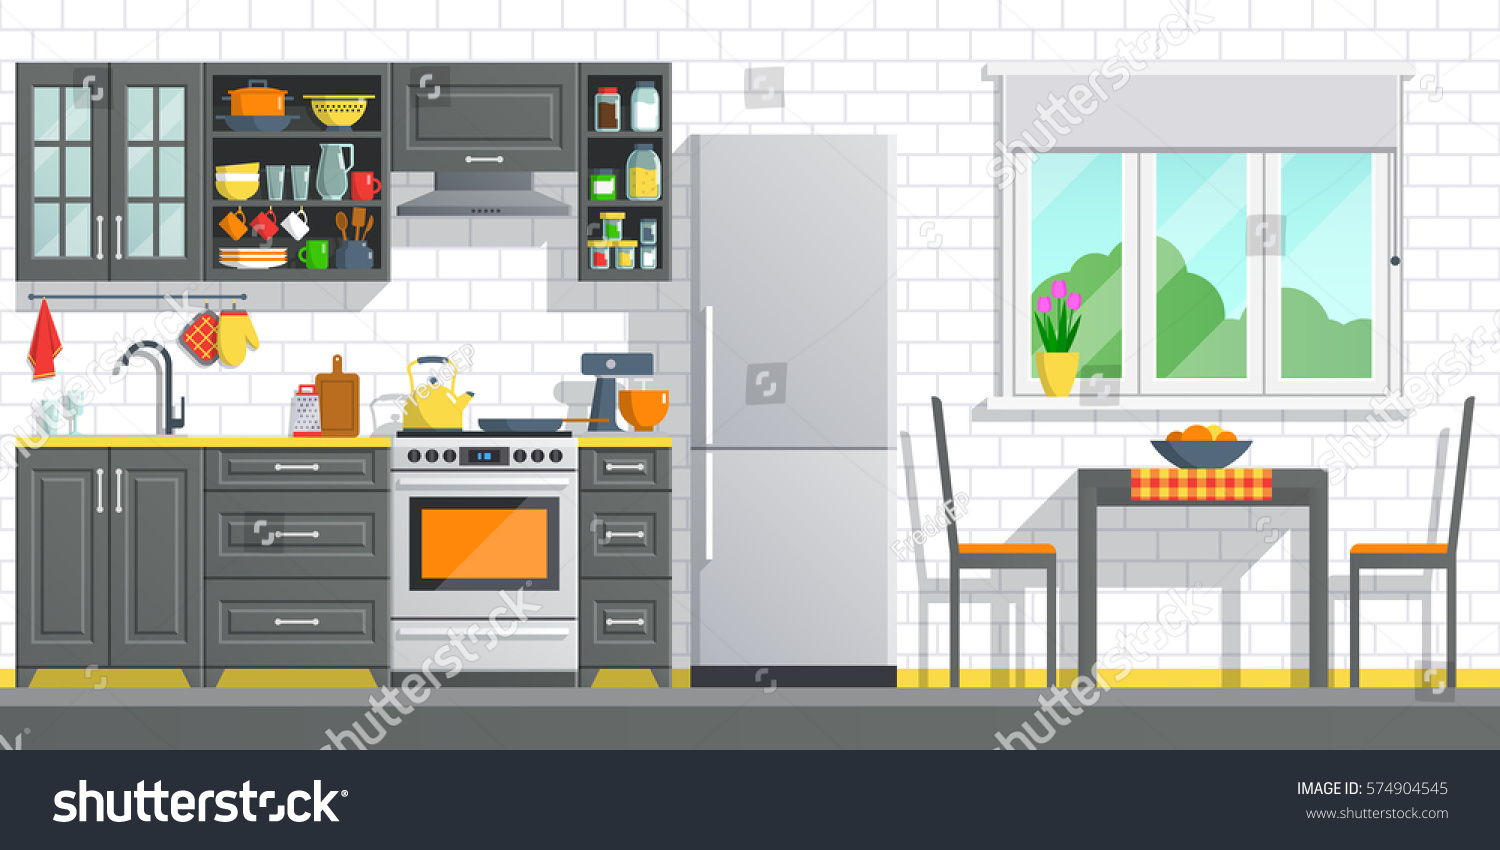 Kitchen Appliances Black Interior On White Stock Vector 574904545 ...